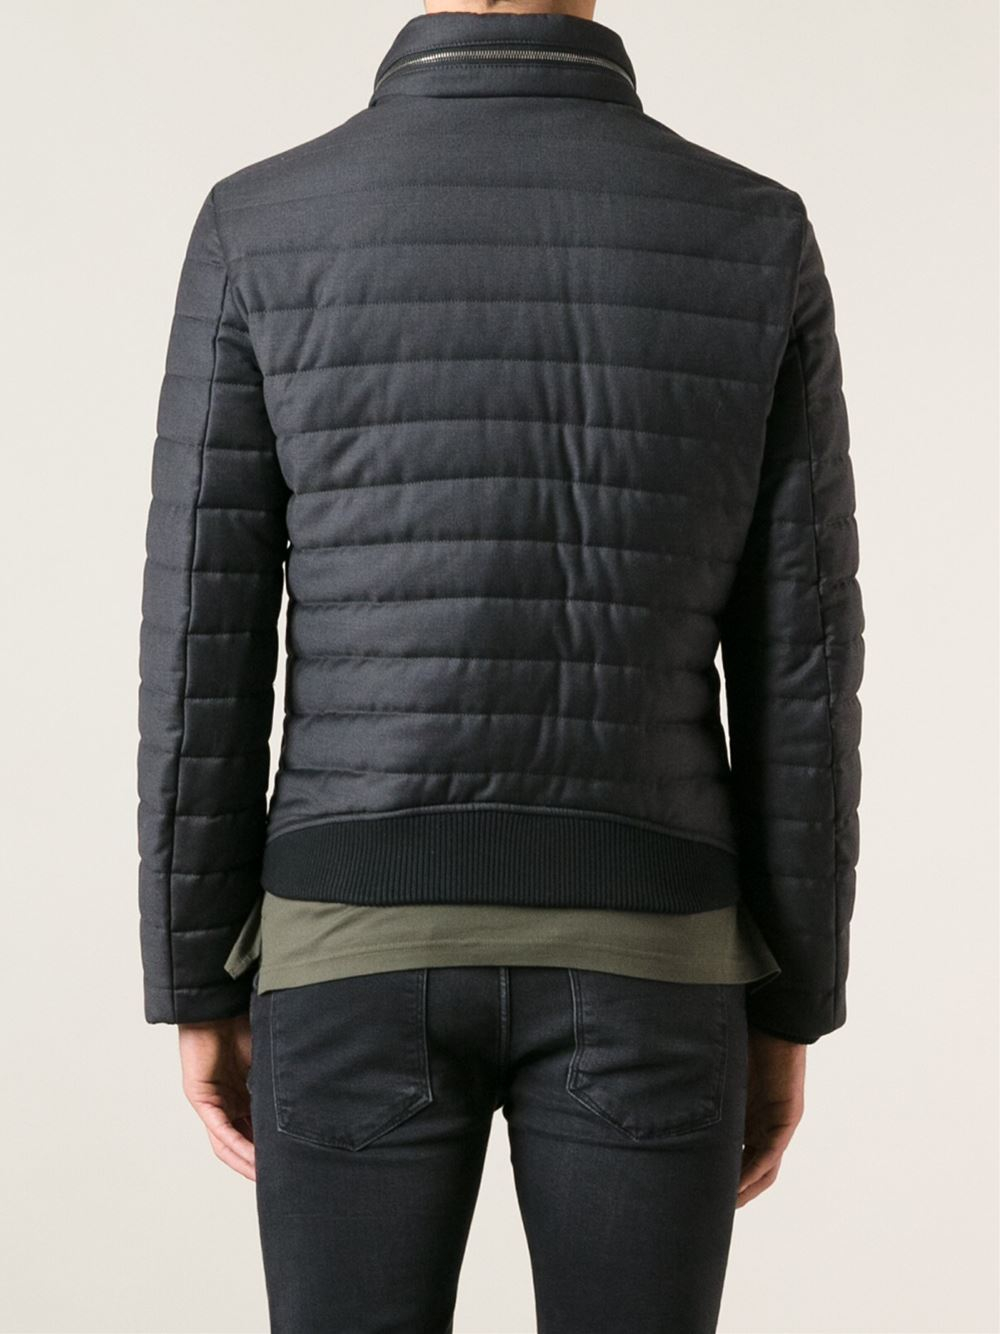 Lyst Emporio Armani Quilted Puffer Jacket In Black For Men